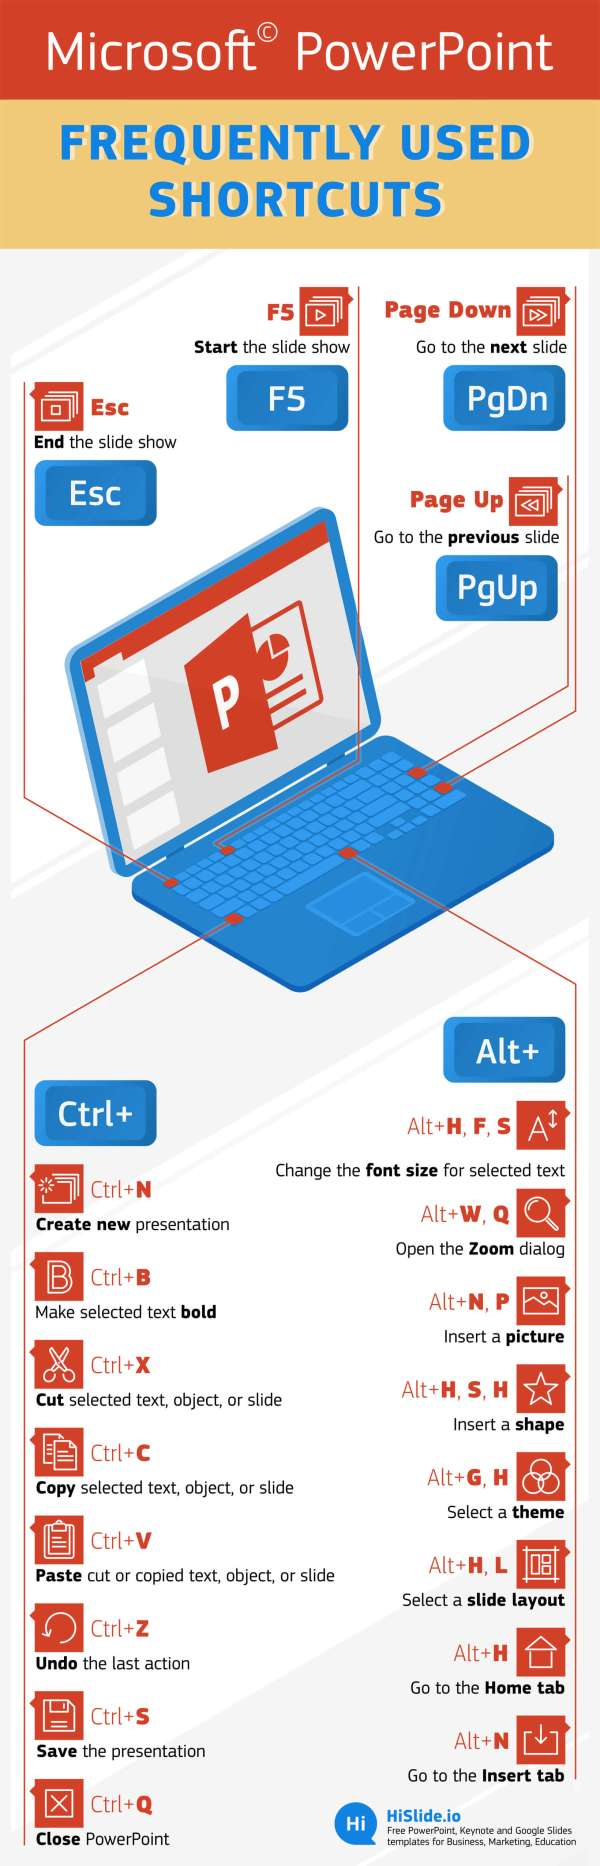 keyboard-shortcut-for-powerpoint-infographic-lkrllc